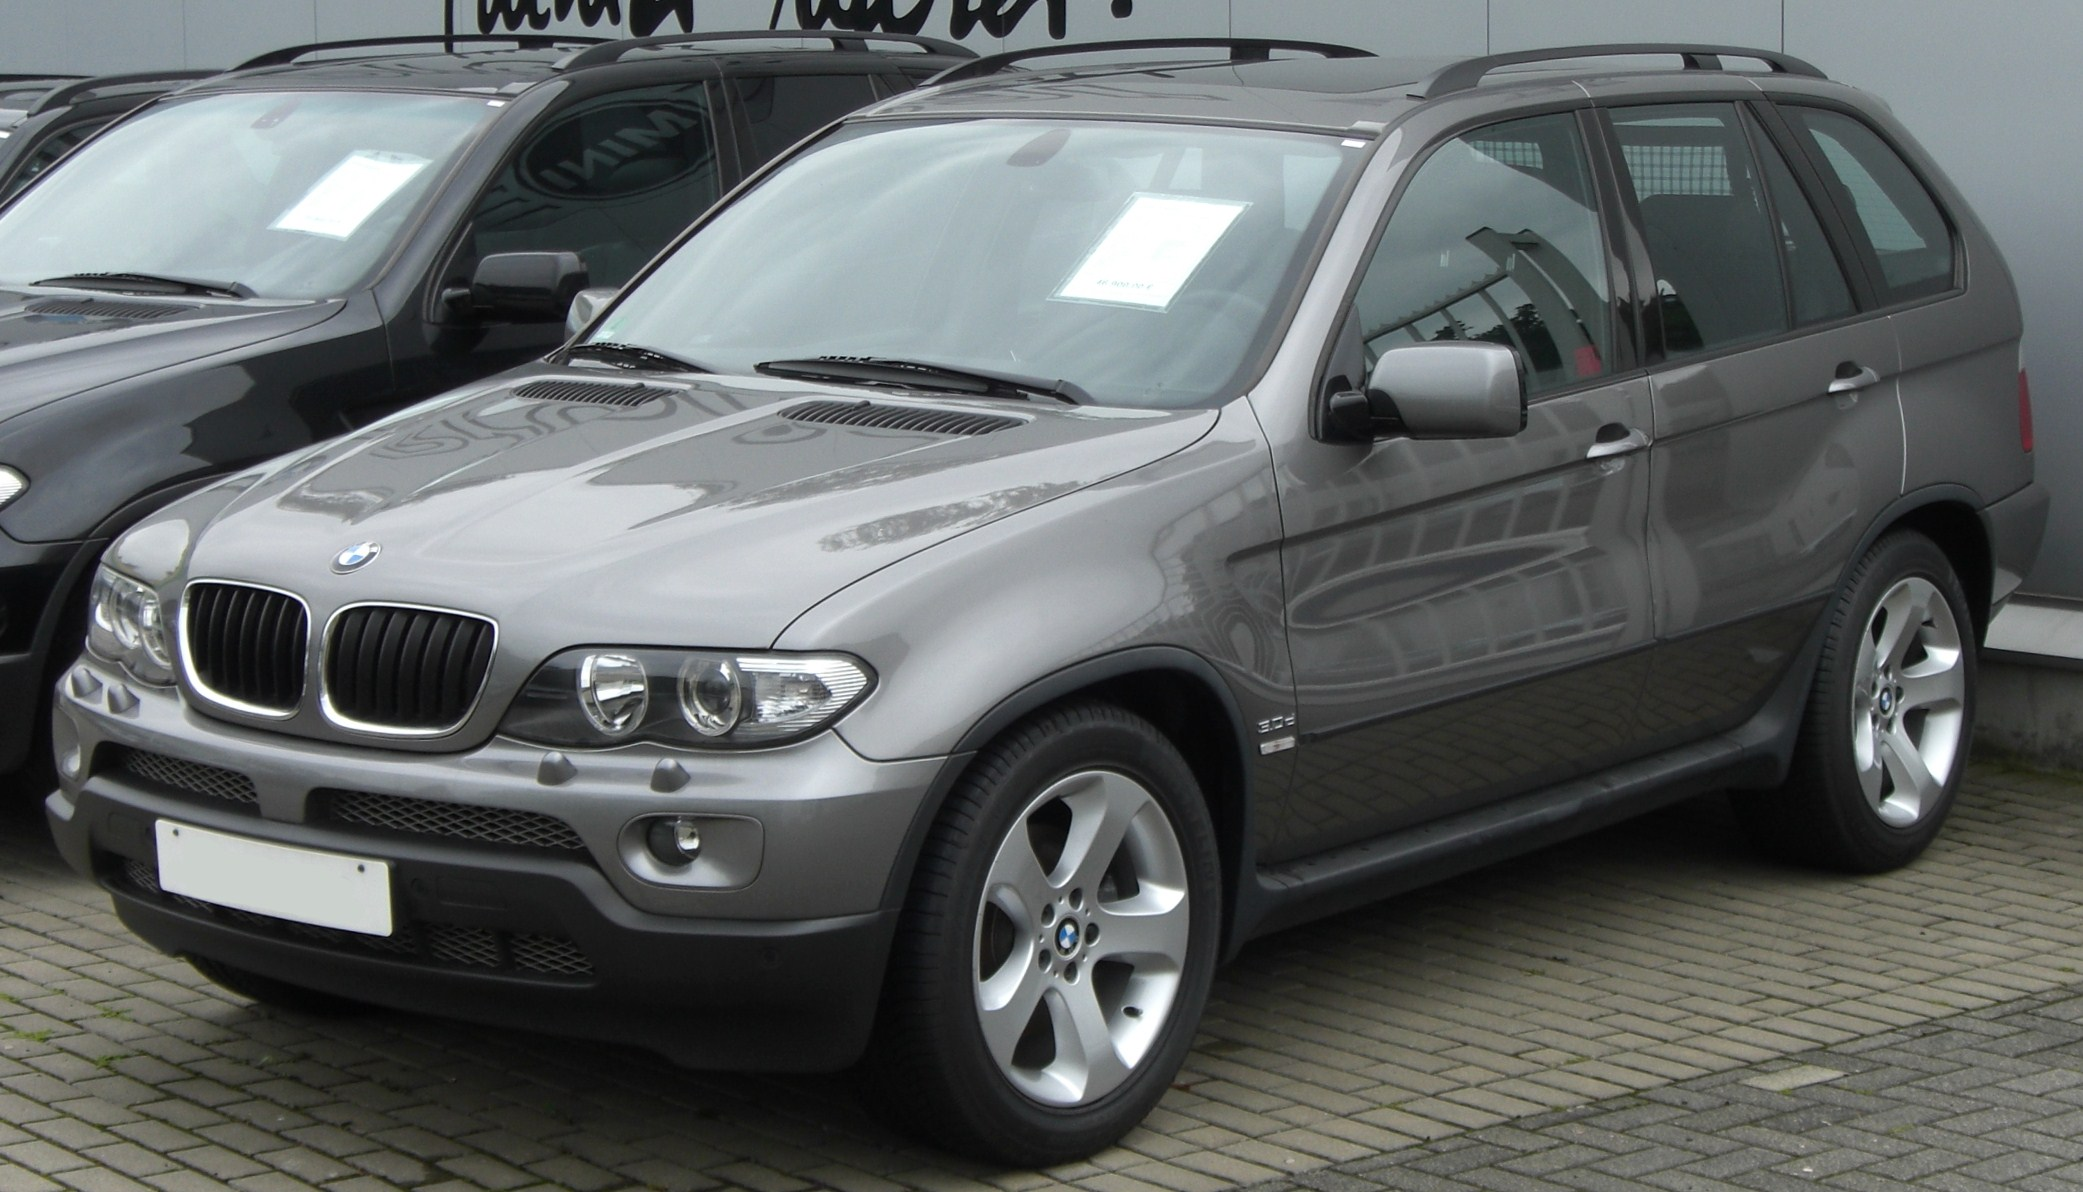 datei bmw x5 e53 front jpg wikipedia. Black Bedroom Furniture Sets. Home Design Ideas